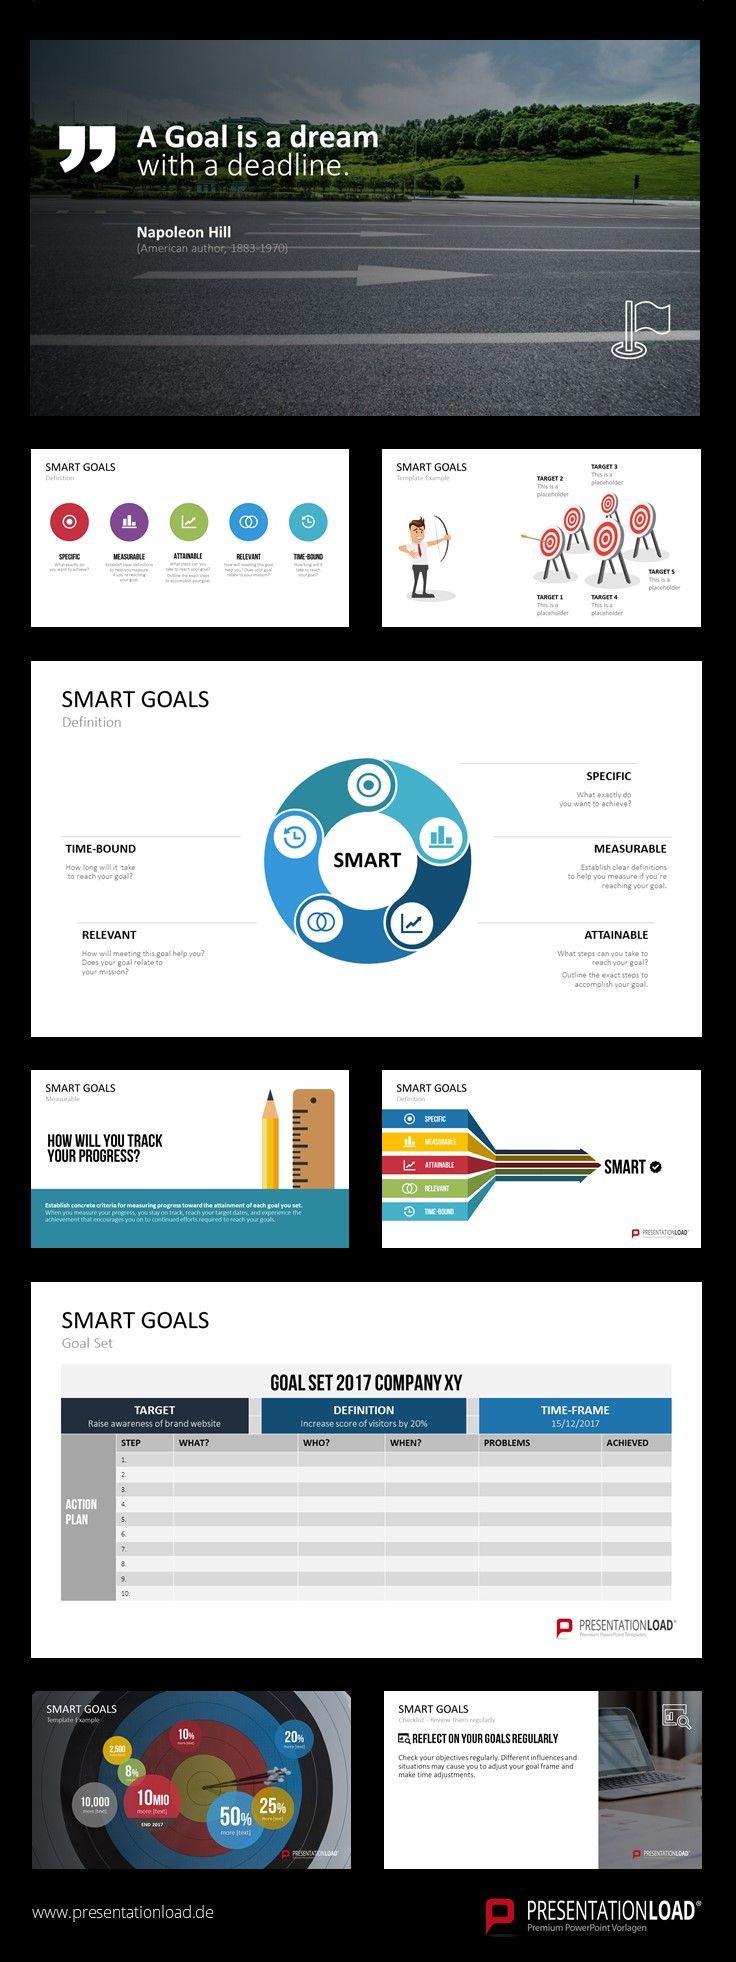 Use our SMART Goals template in attractive flat design to